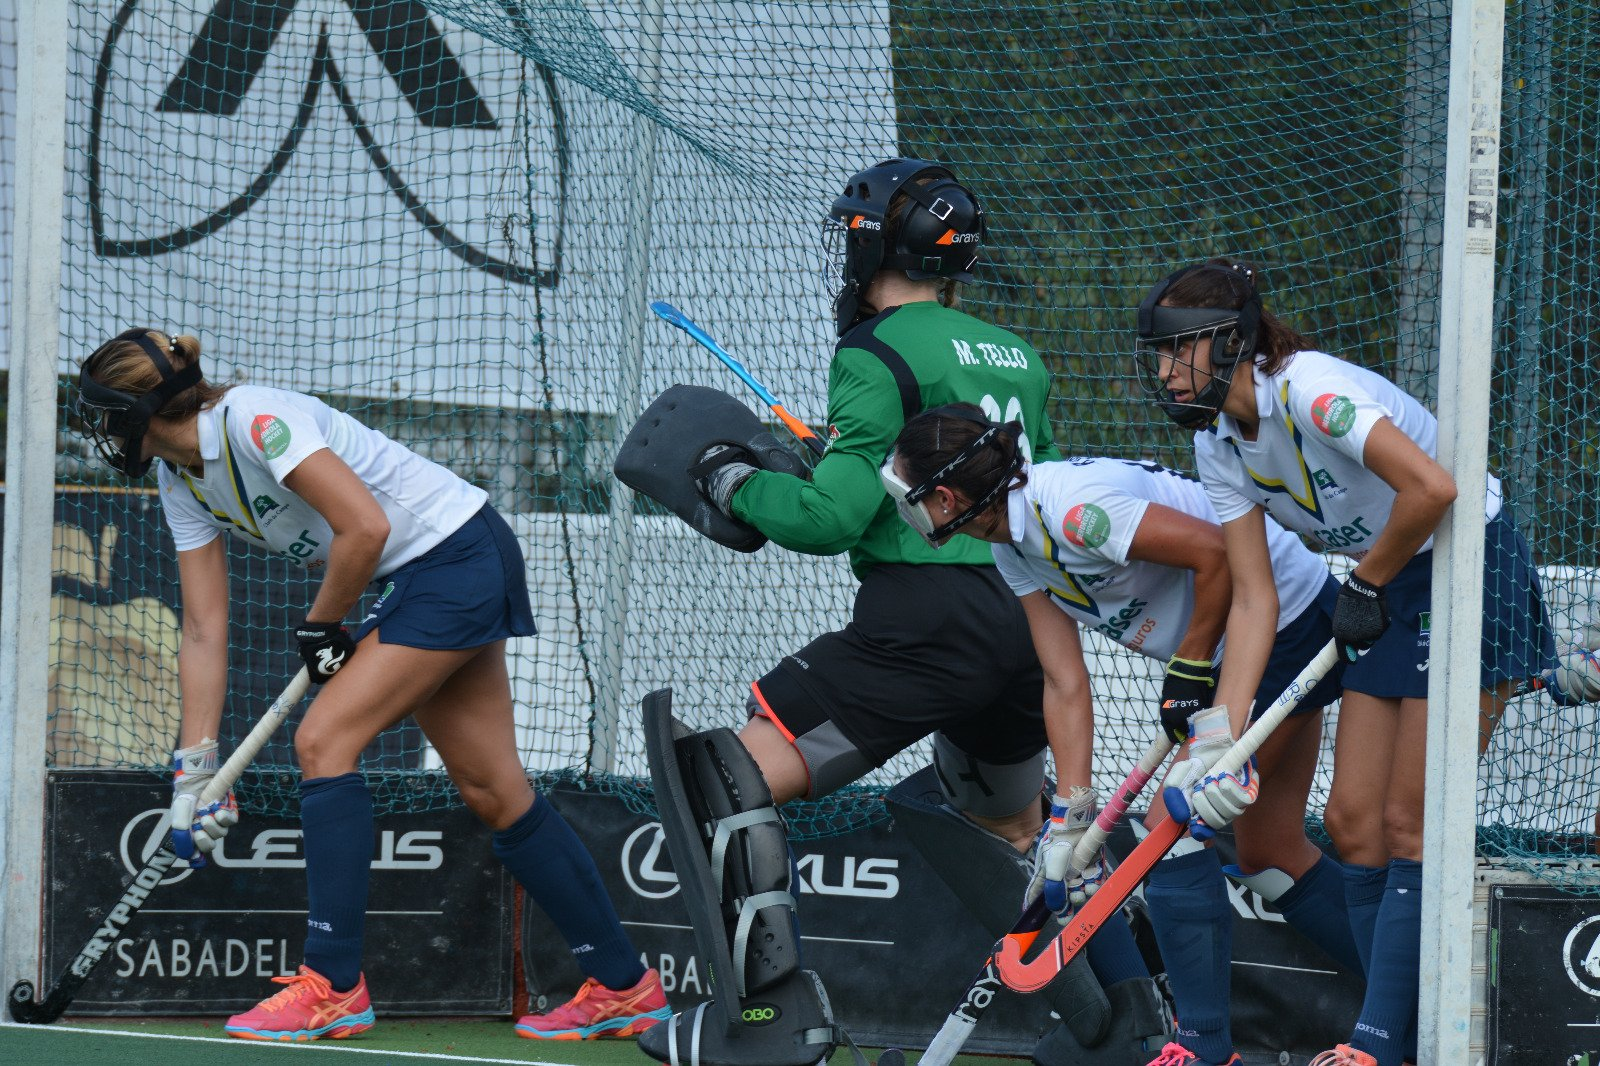 Club de Campo de hockey femenino.